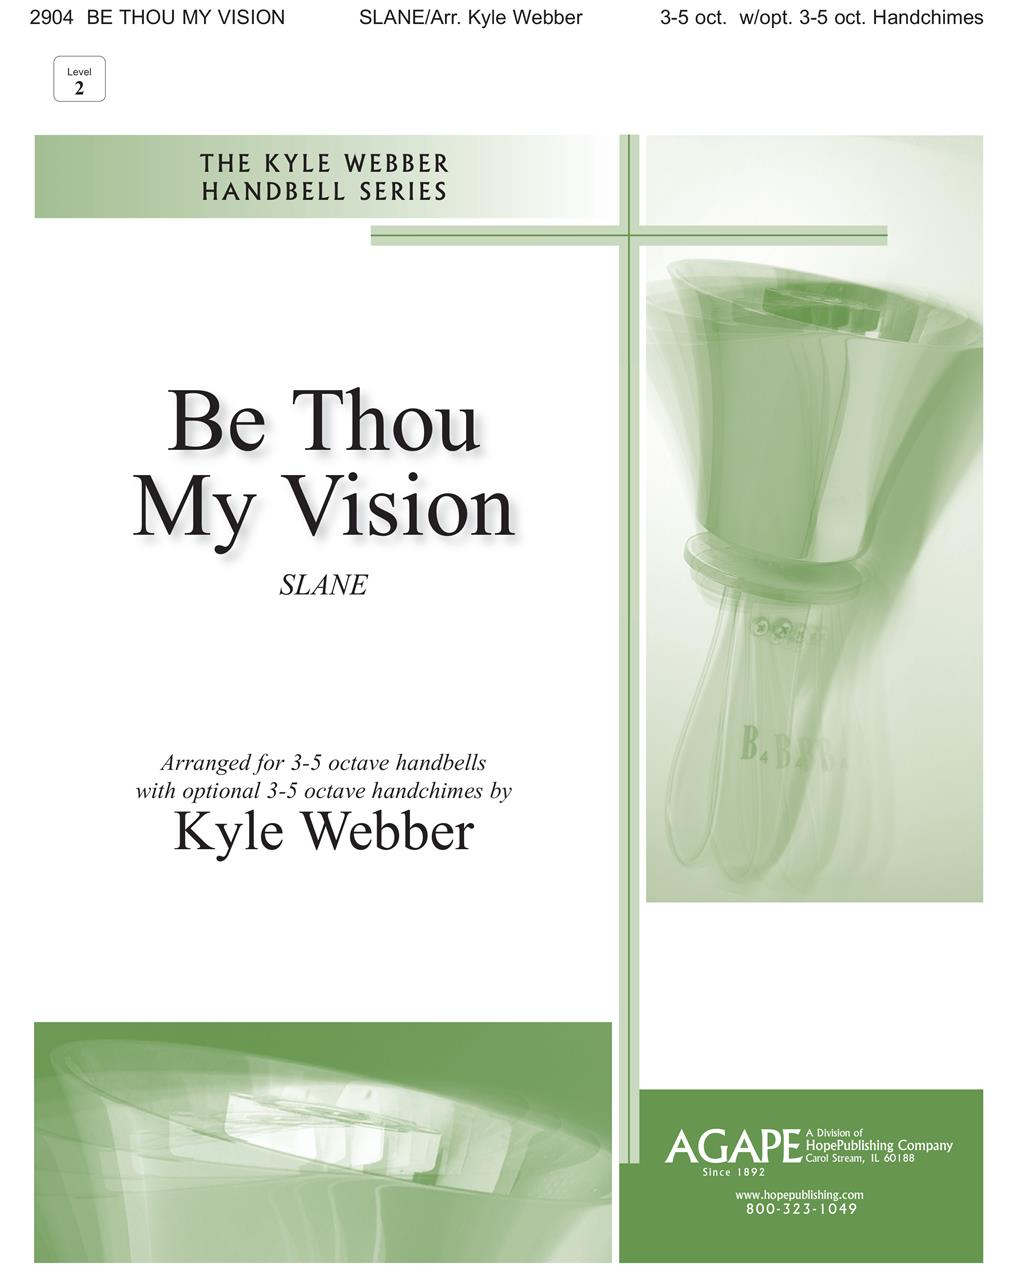 Be Thou My Vision - 3-5 Oct. Cover Image